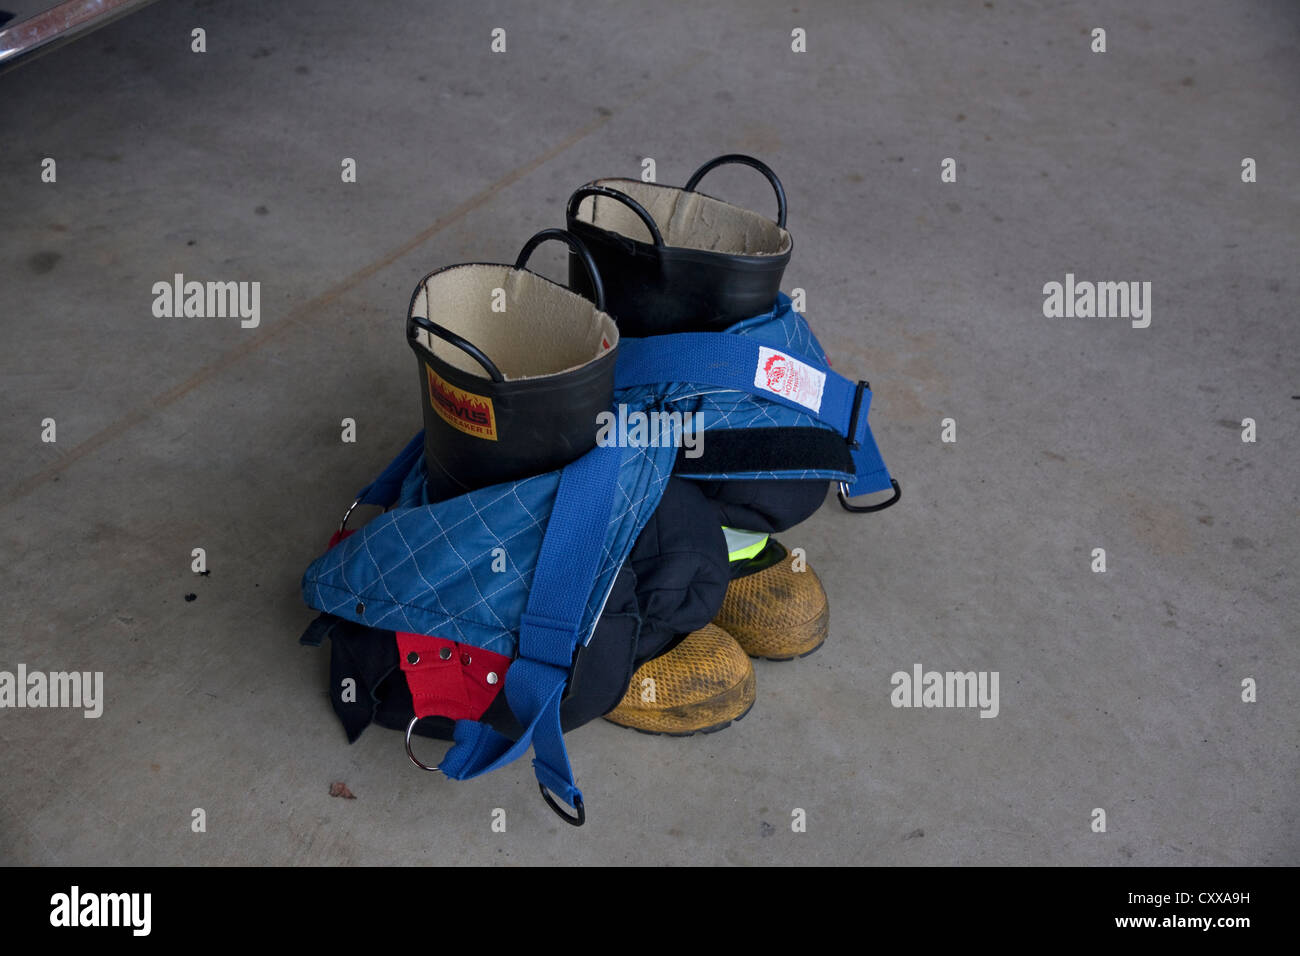 Firefighter turn-out gear, boots and pants Eastern USA - Stock Image